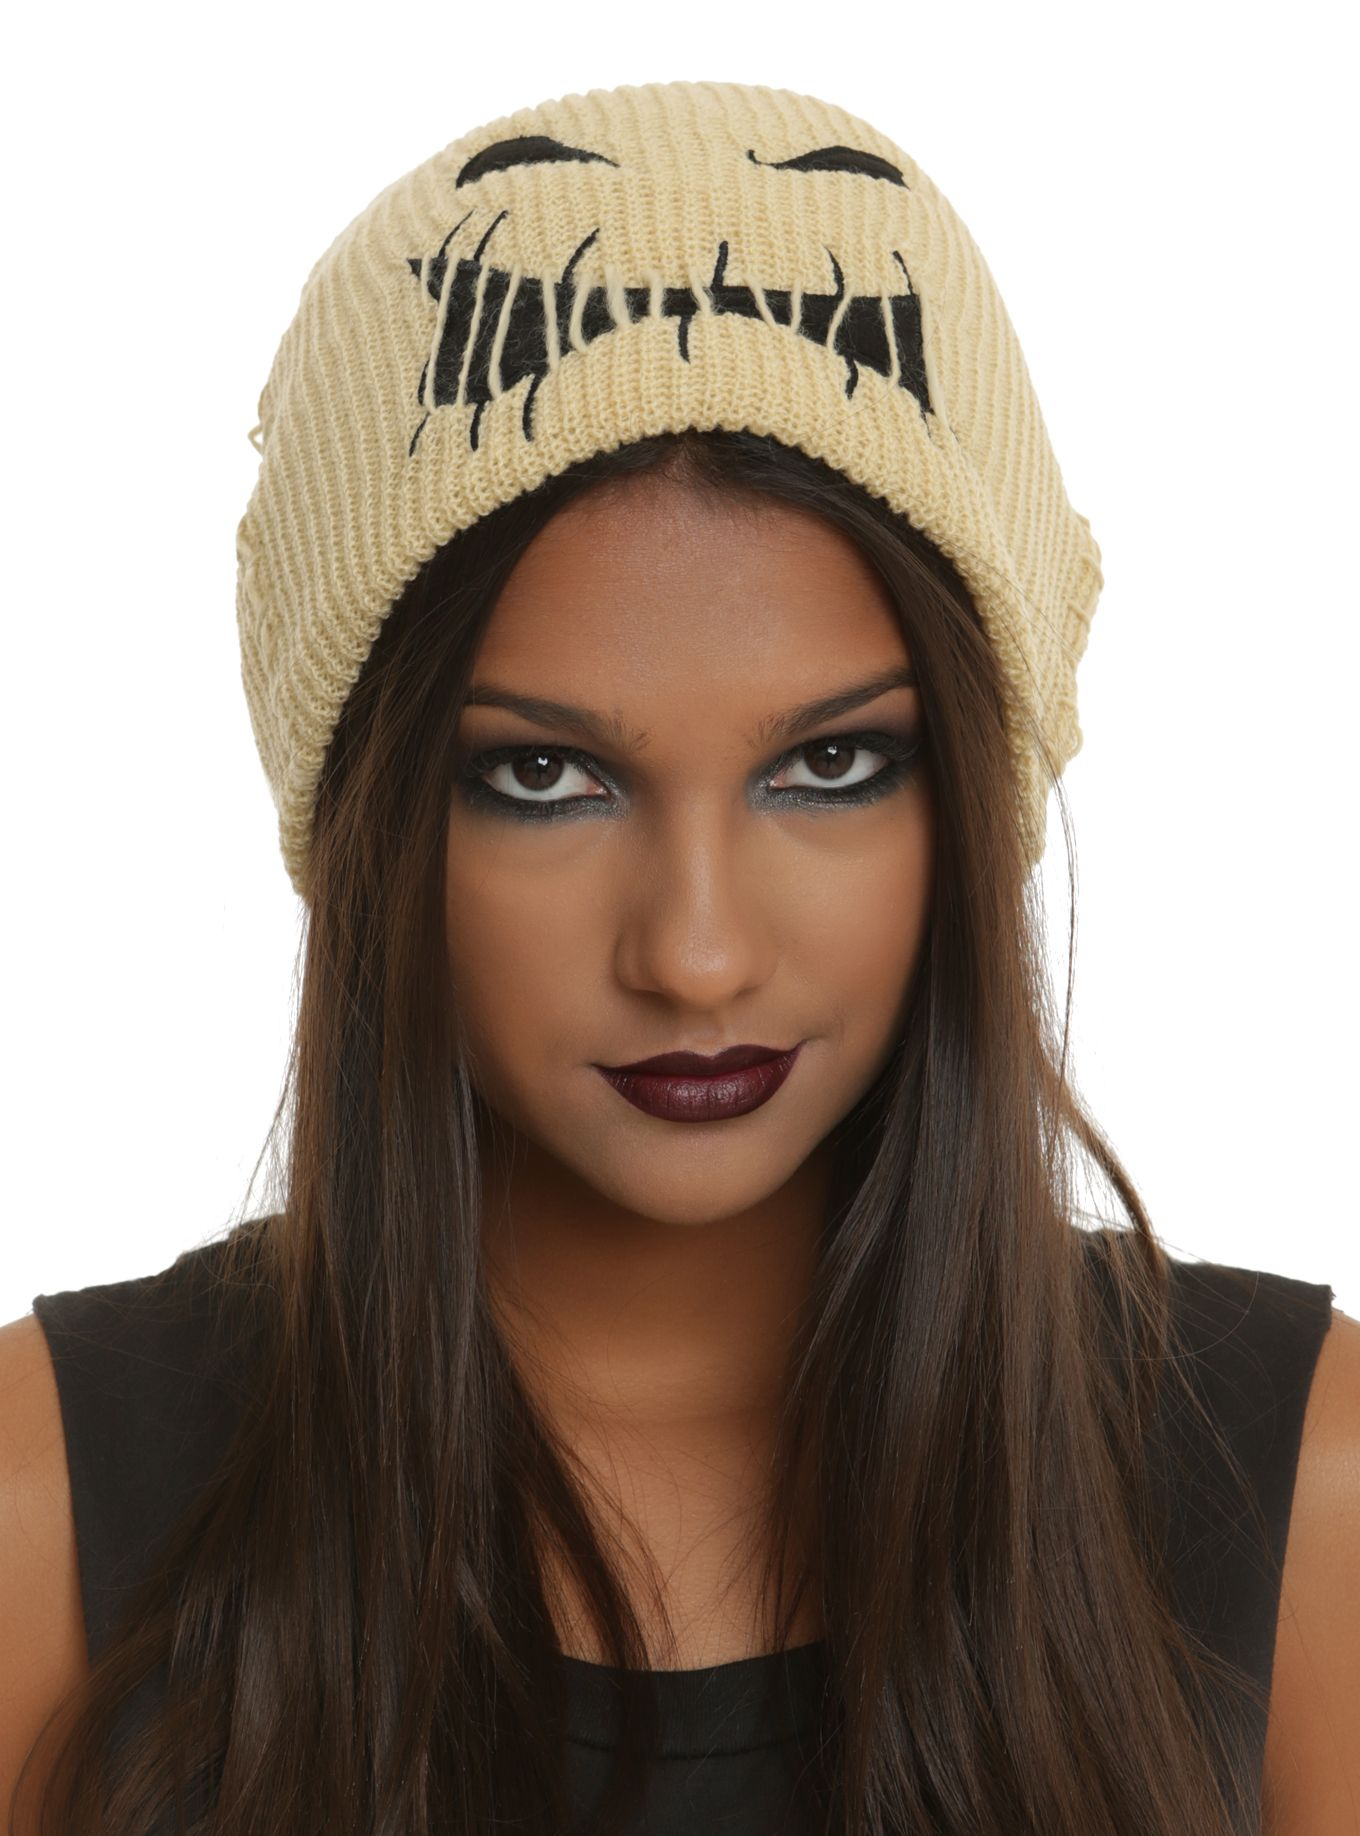 The Nightmare Before Christmas Oogie Boogie Slouch Beanie   Hot Topic